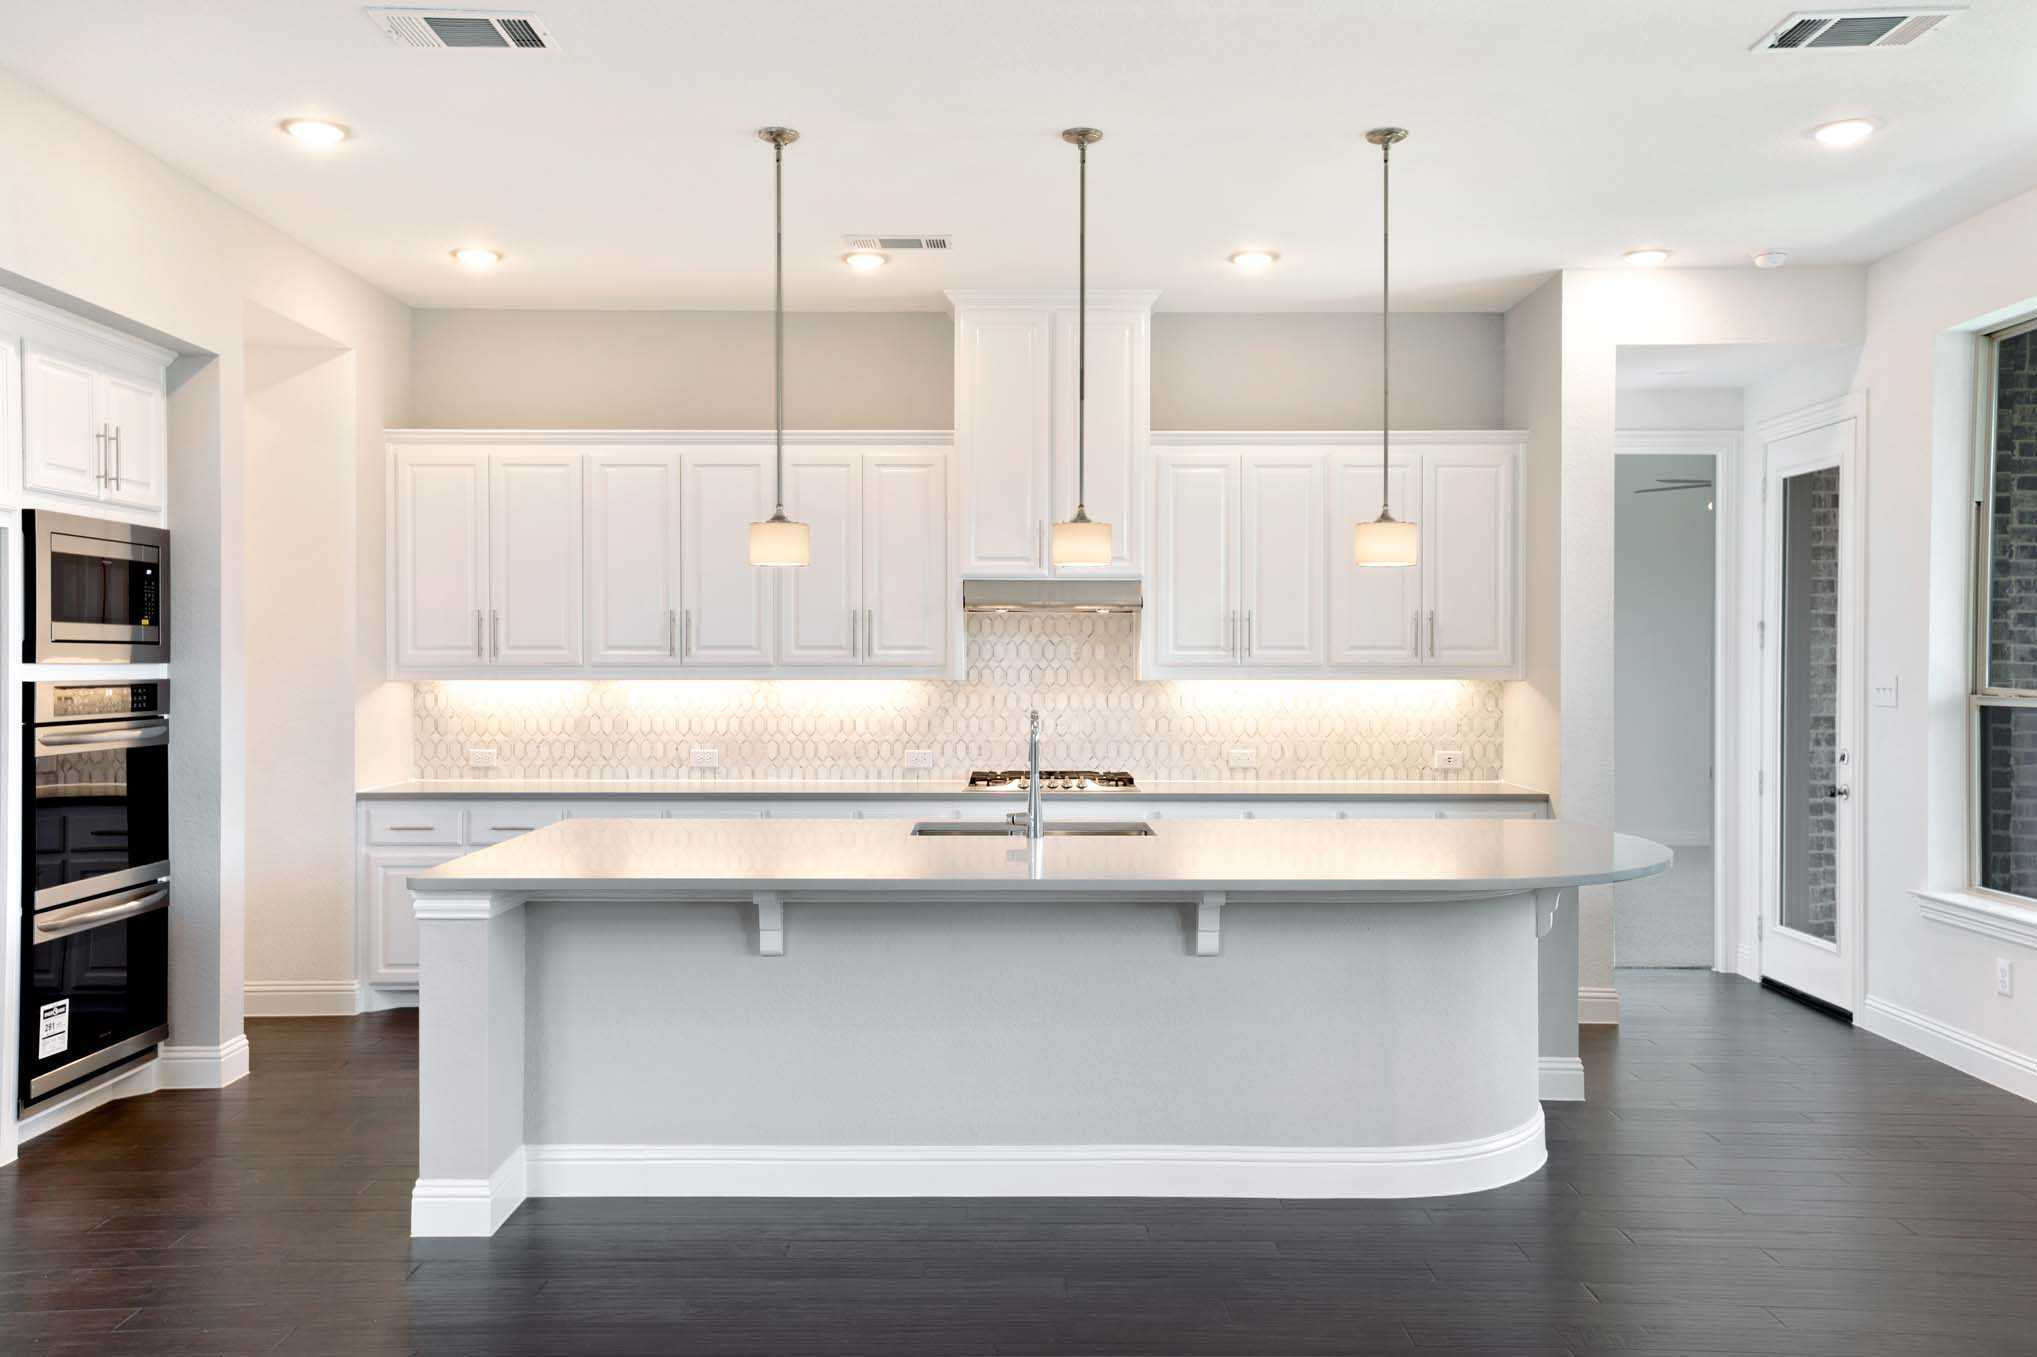 Kitchen featured in the Plan 221 By Highland Homes in Dallas, TX